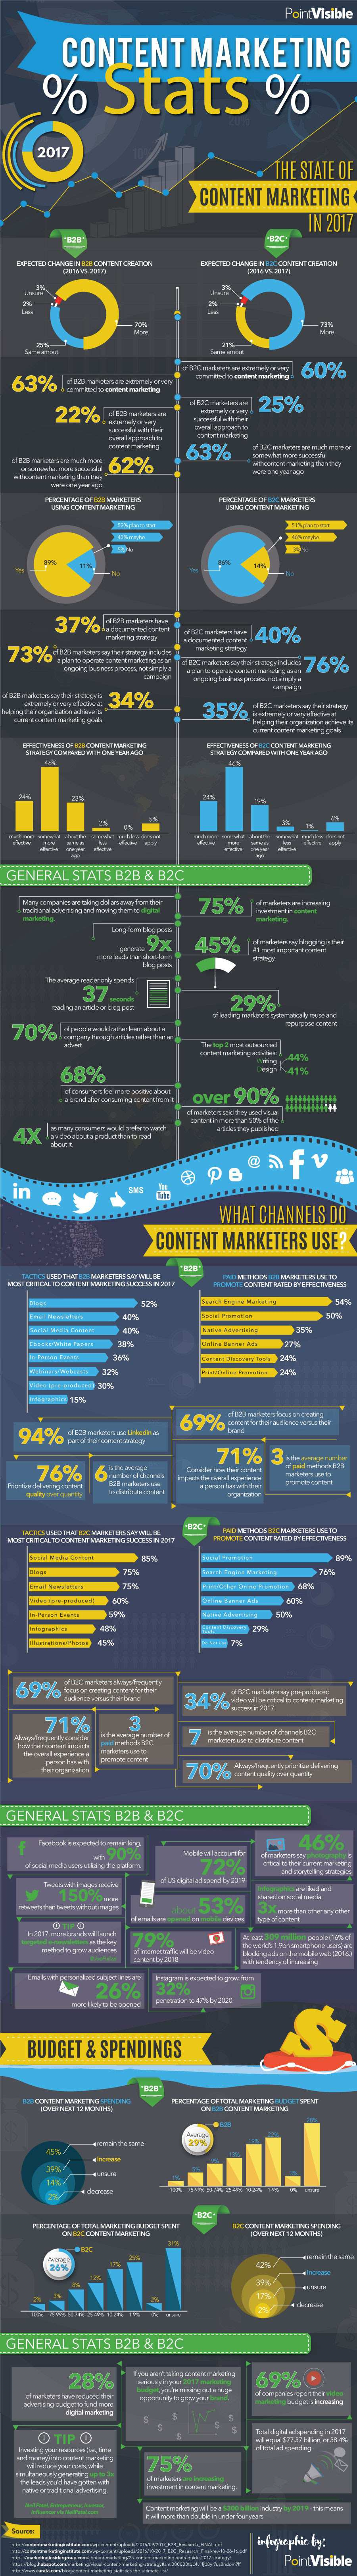 Content-Marketing-Stats-Infographic-2017